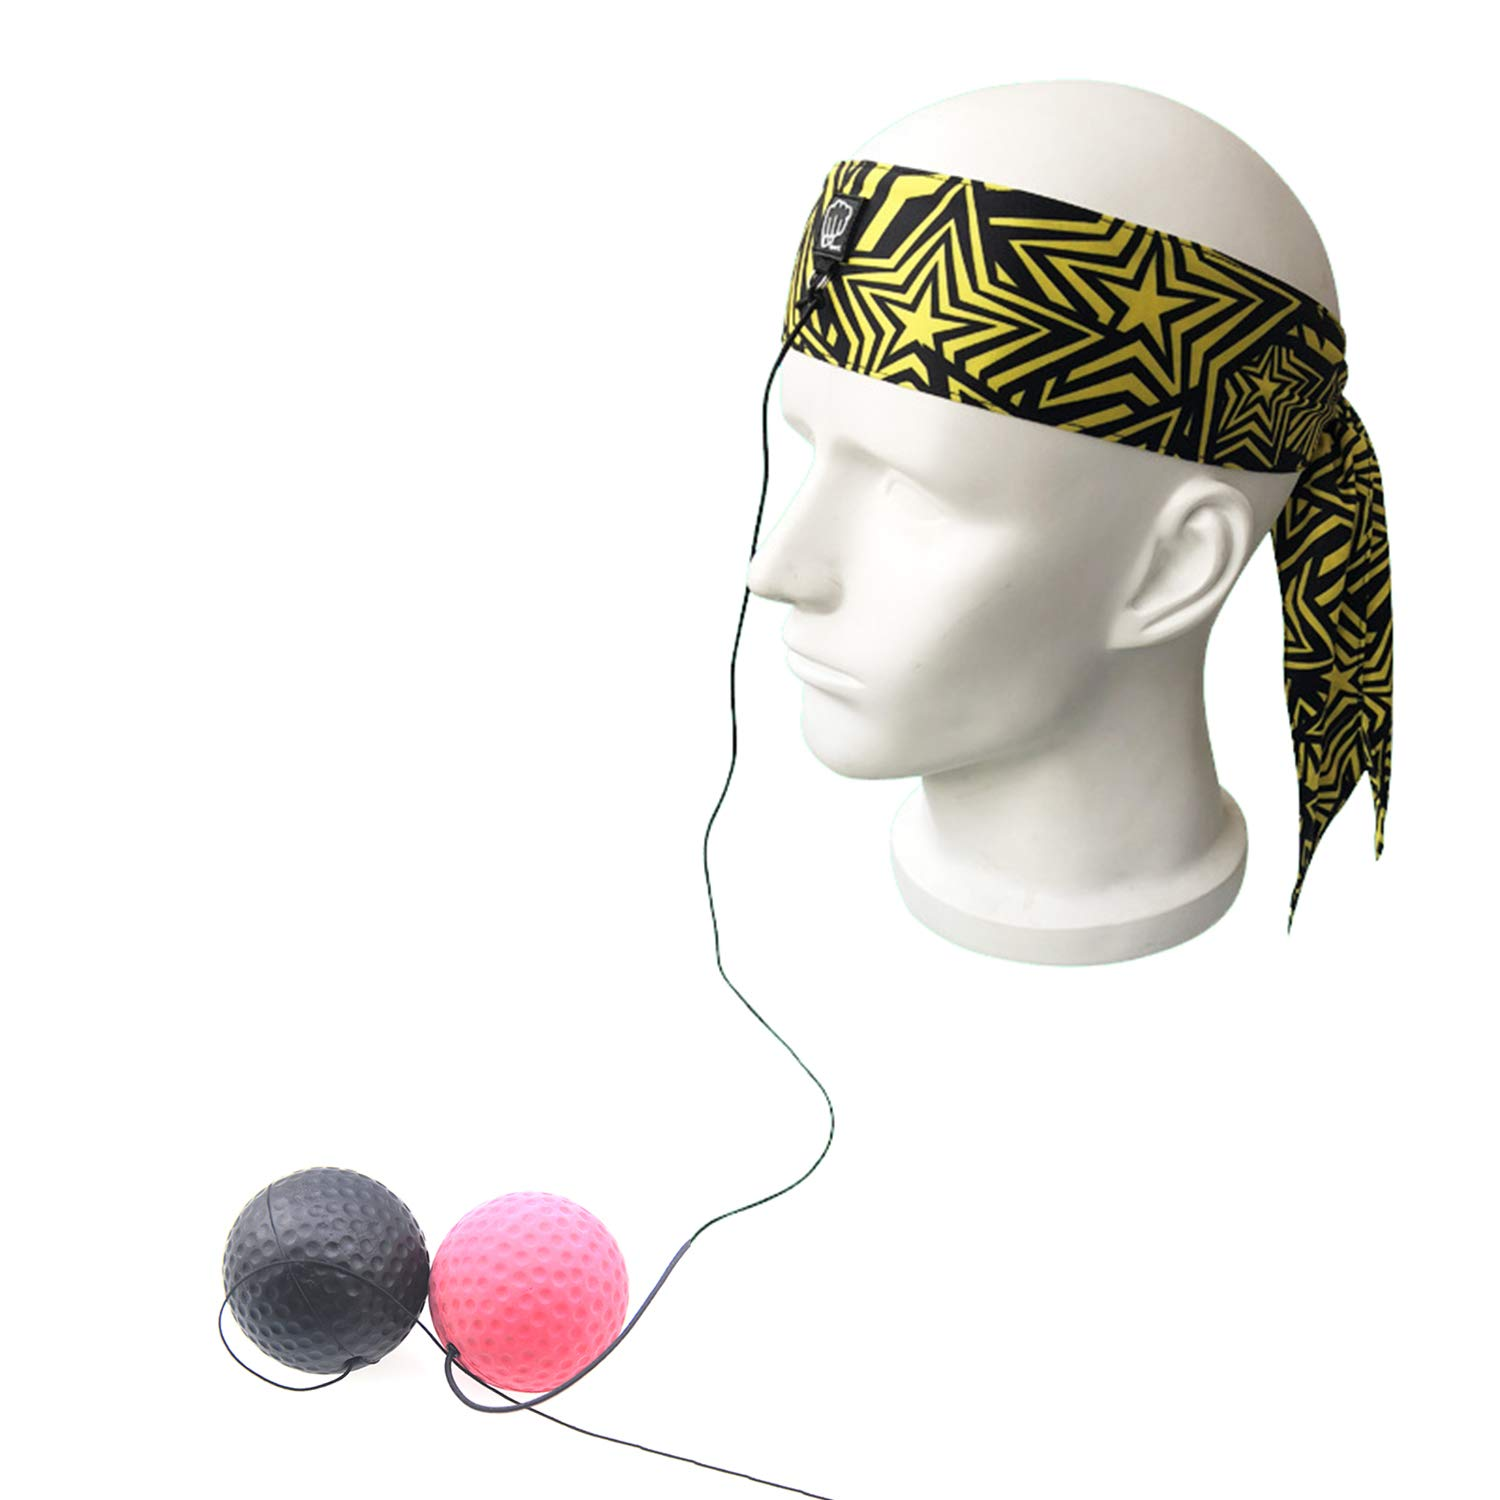 Boxing Reaction Reflex Speed Ball Adjustable Headband 2 Balls for Concentration Training Pressure Relax Focus Punching Bags Black Tavie